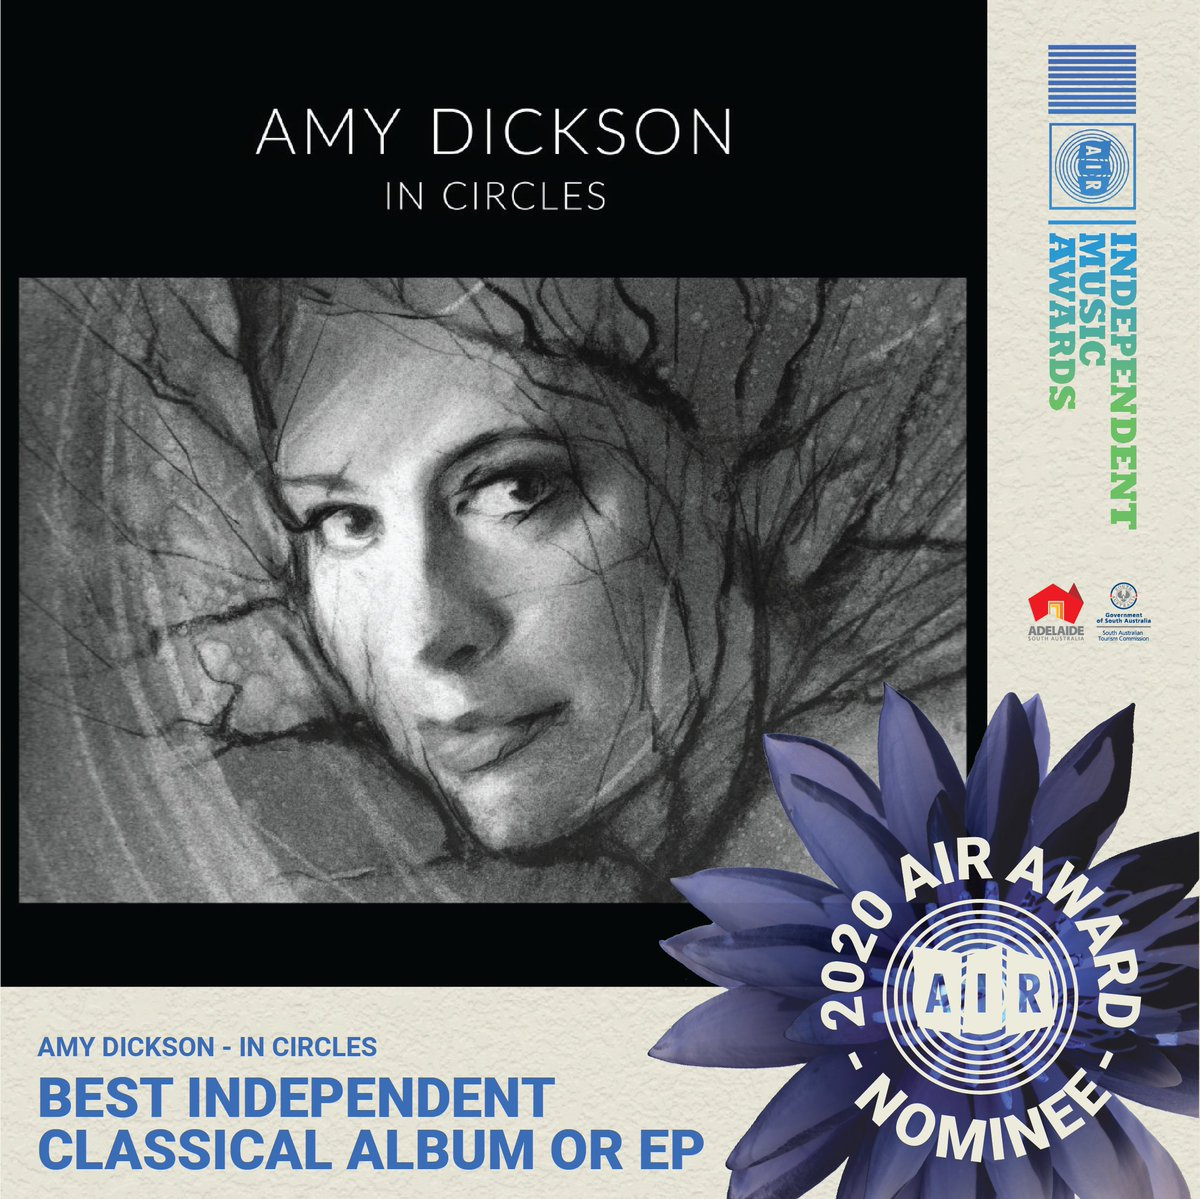 "Exciting news! @AmyDickson's album ""In Circles"" featuring James MacMillan's 'Saxophone Concerto' and 'From Galloway' has been nominated for ⭐️Best Independent Classical Album ⭐️by the Air Awards in Australia @ausindies: https://t.co/cQzllafMp6 Listen here: https://t.co/nKOcG4RNI4 https://t.co/ie3lF6YA3N"